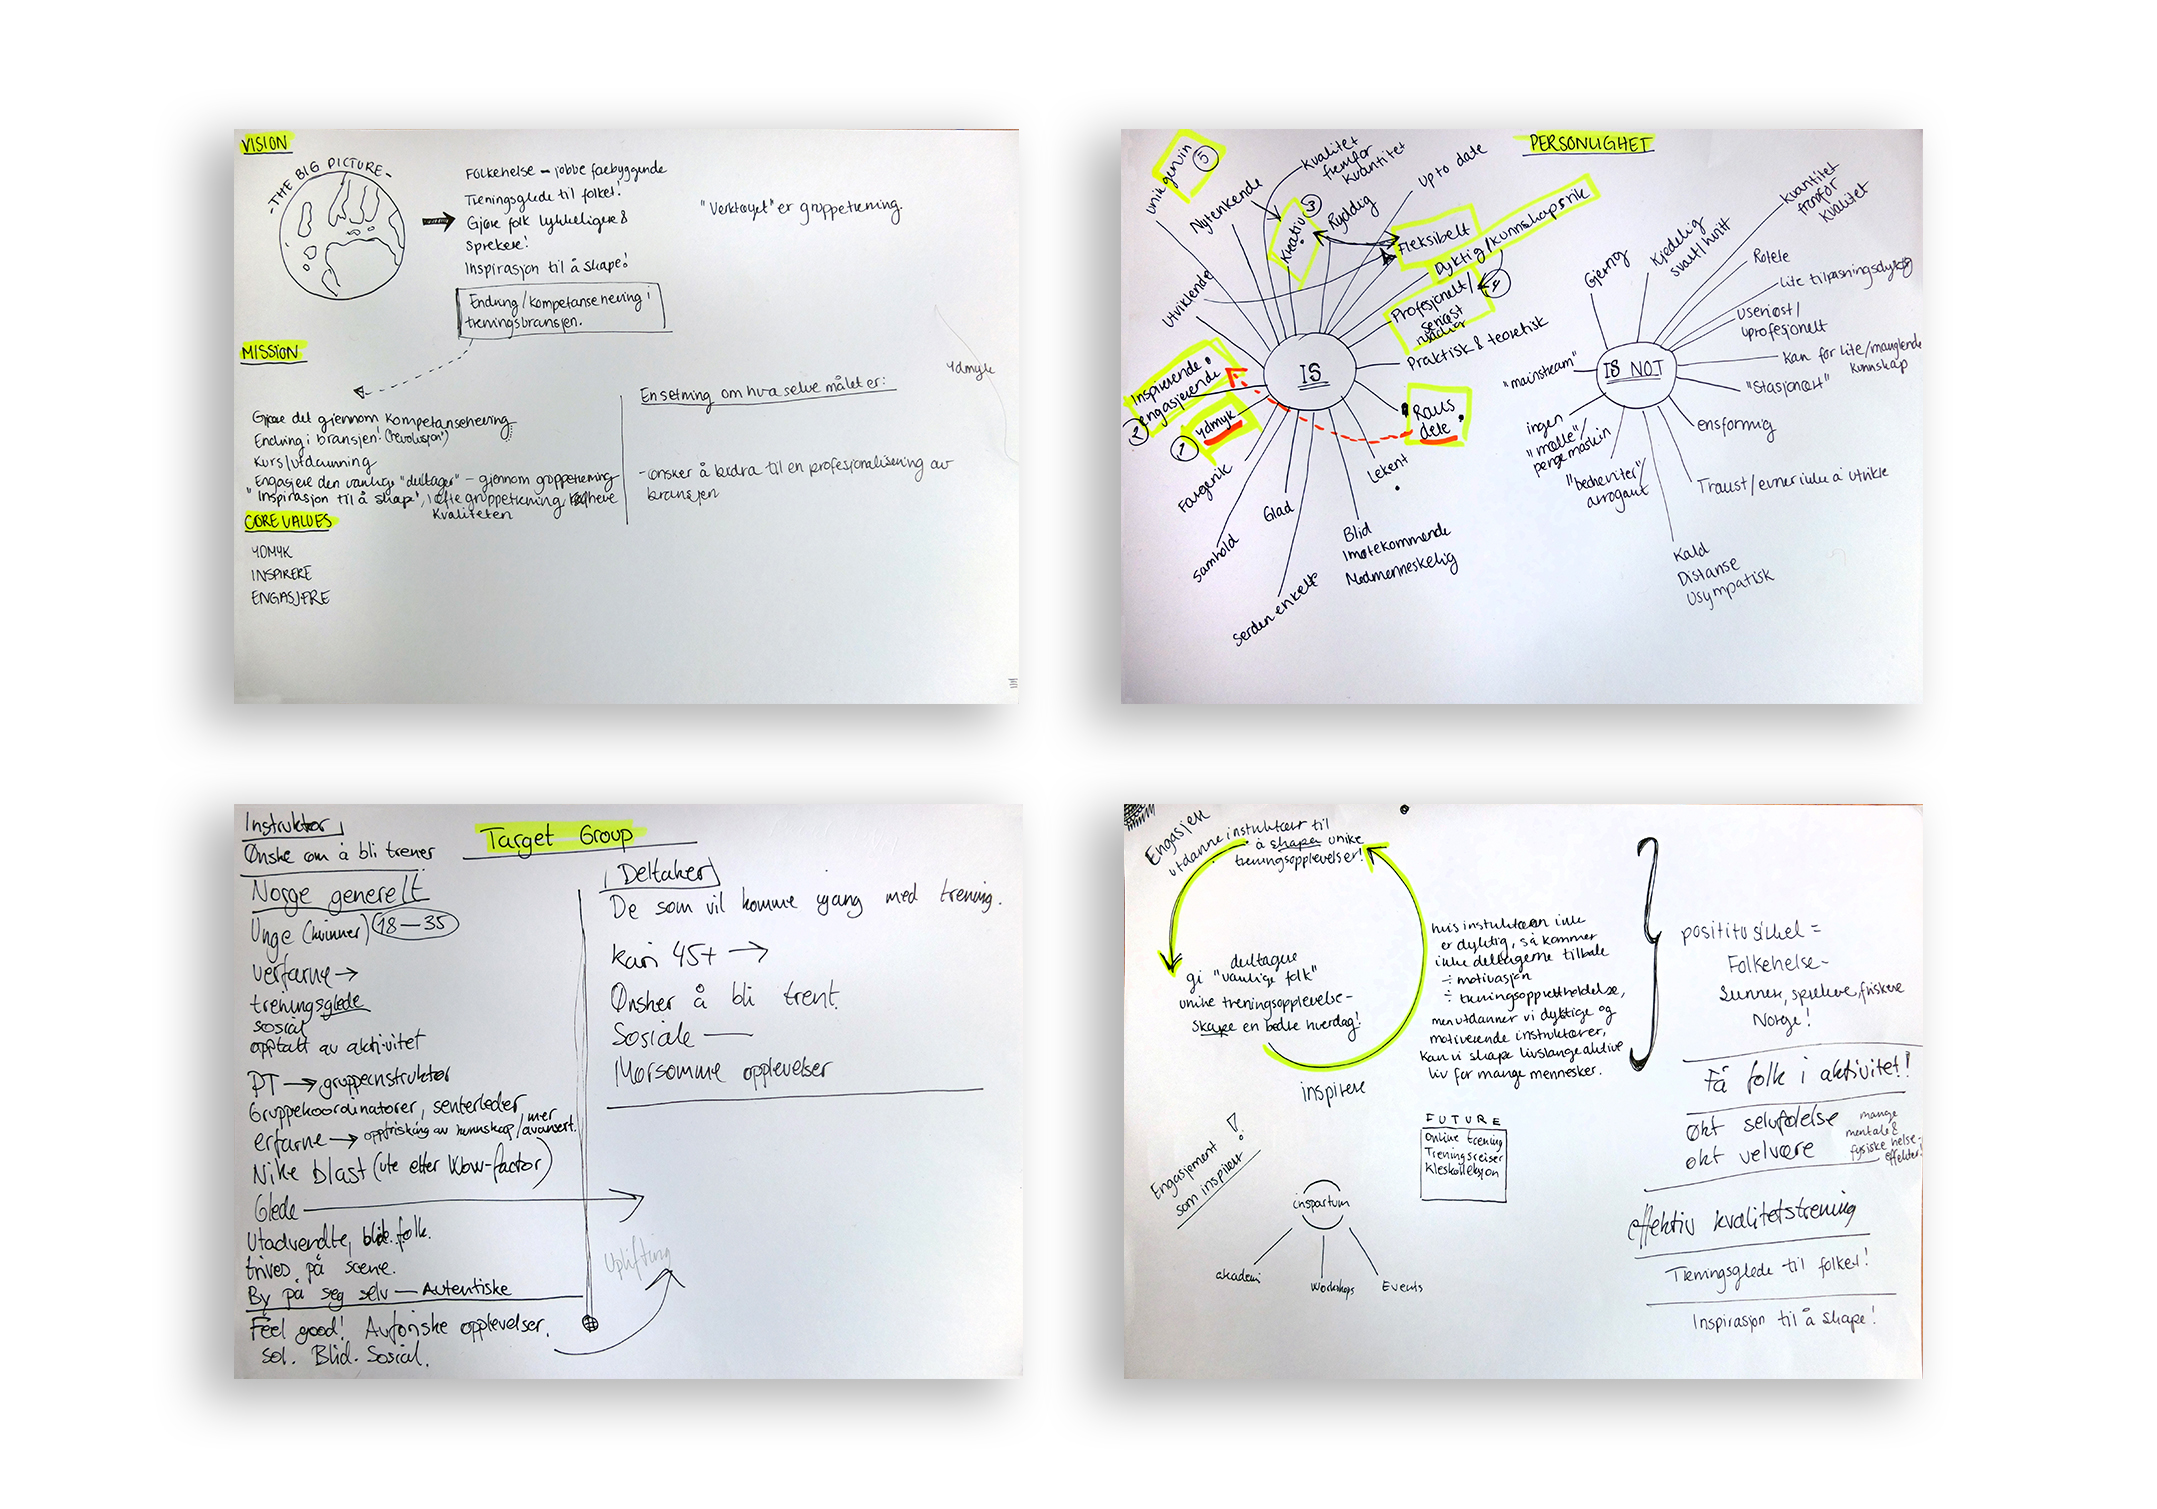 Notes from the workshop.